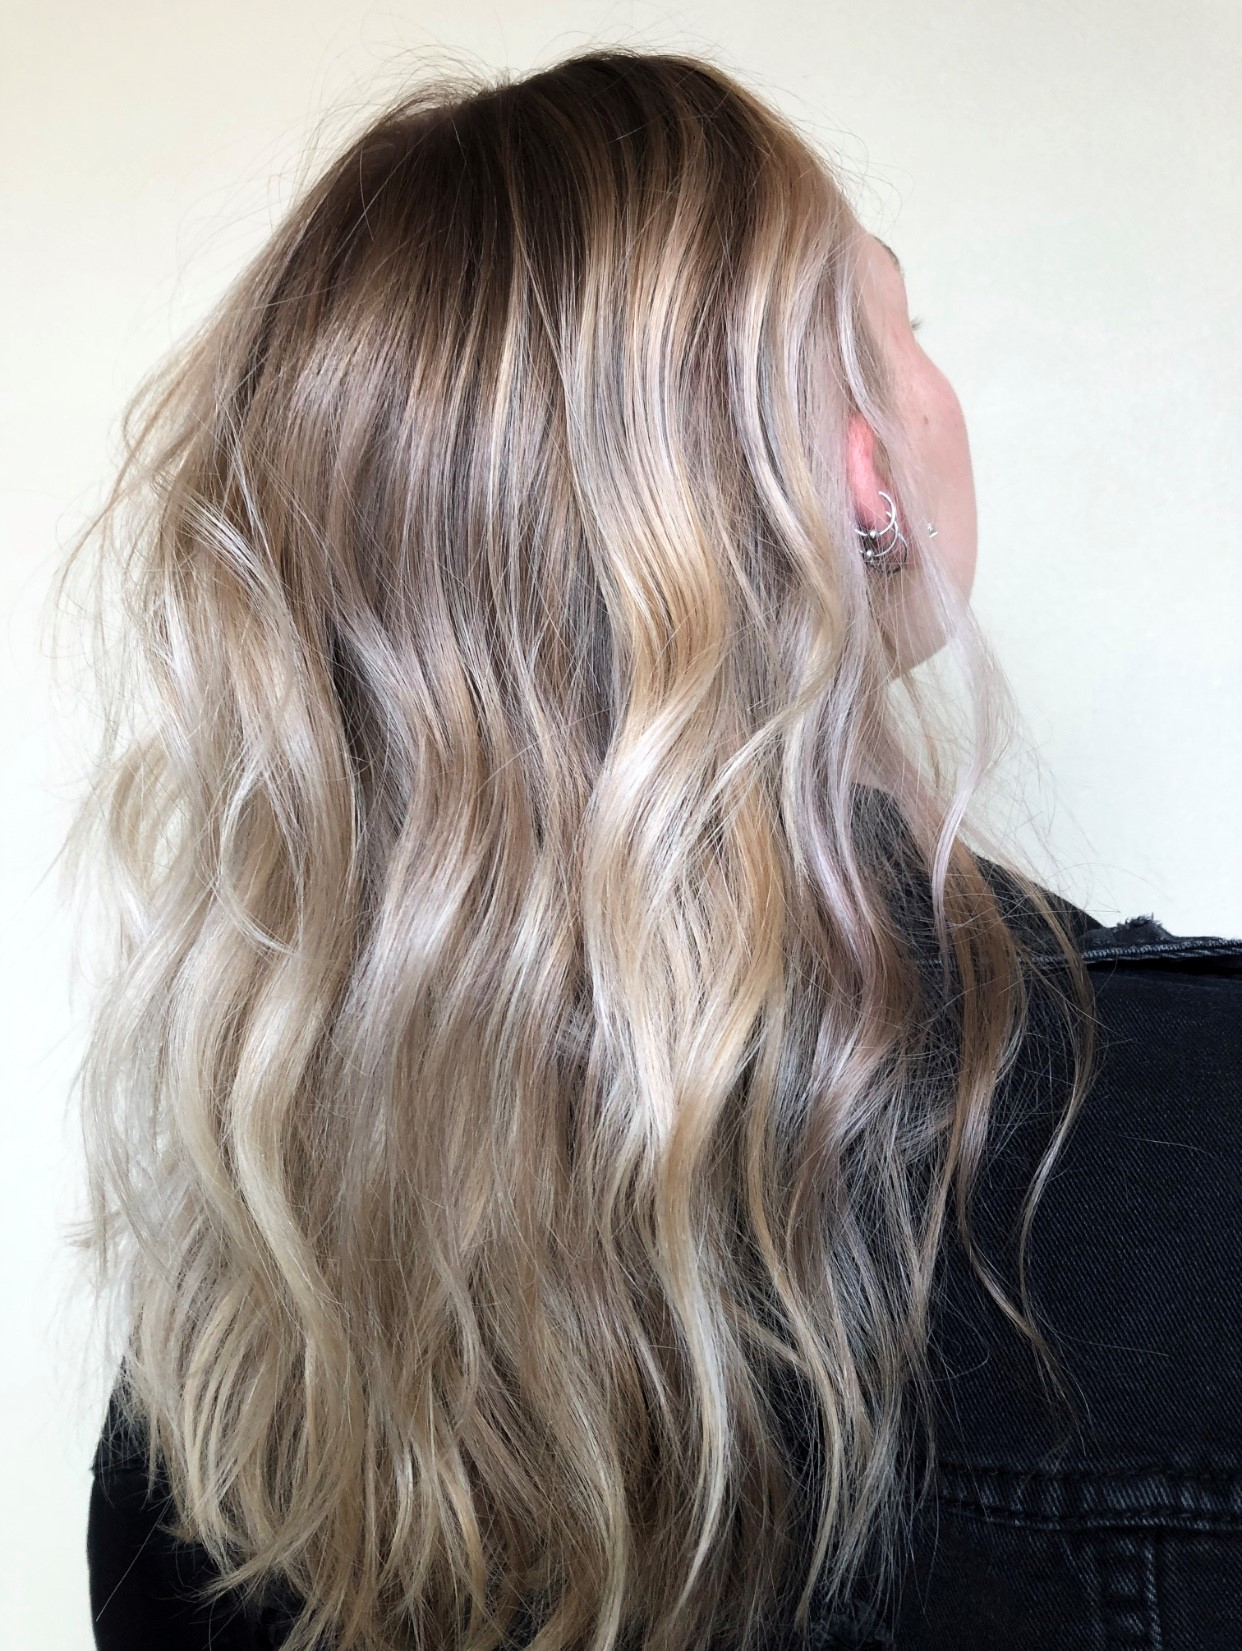 How to Integrate Melted Lowlights and Balayage